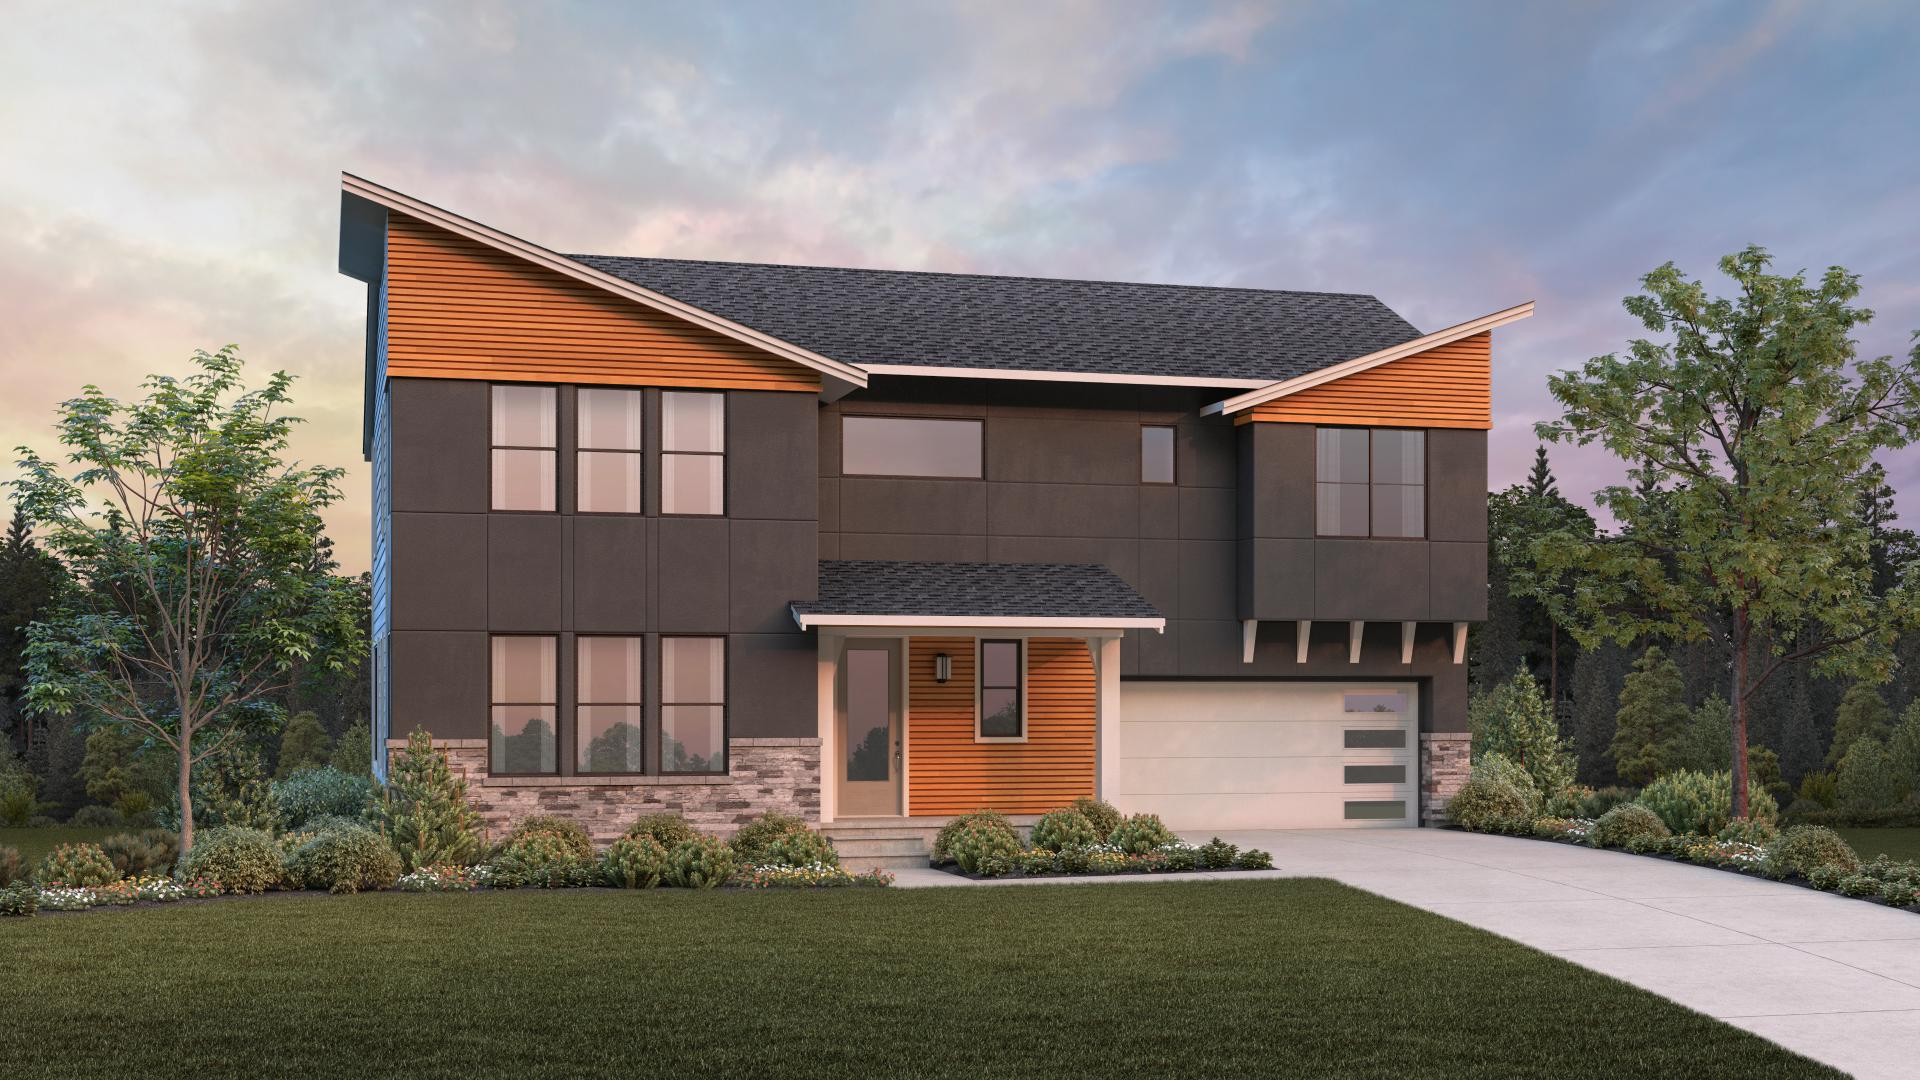 Dramatic details on the Contemporary Metolius home design